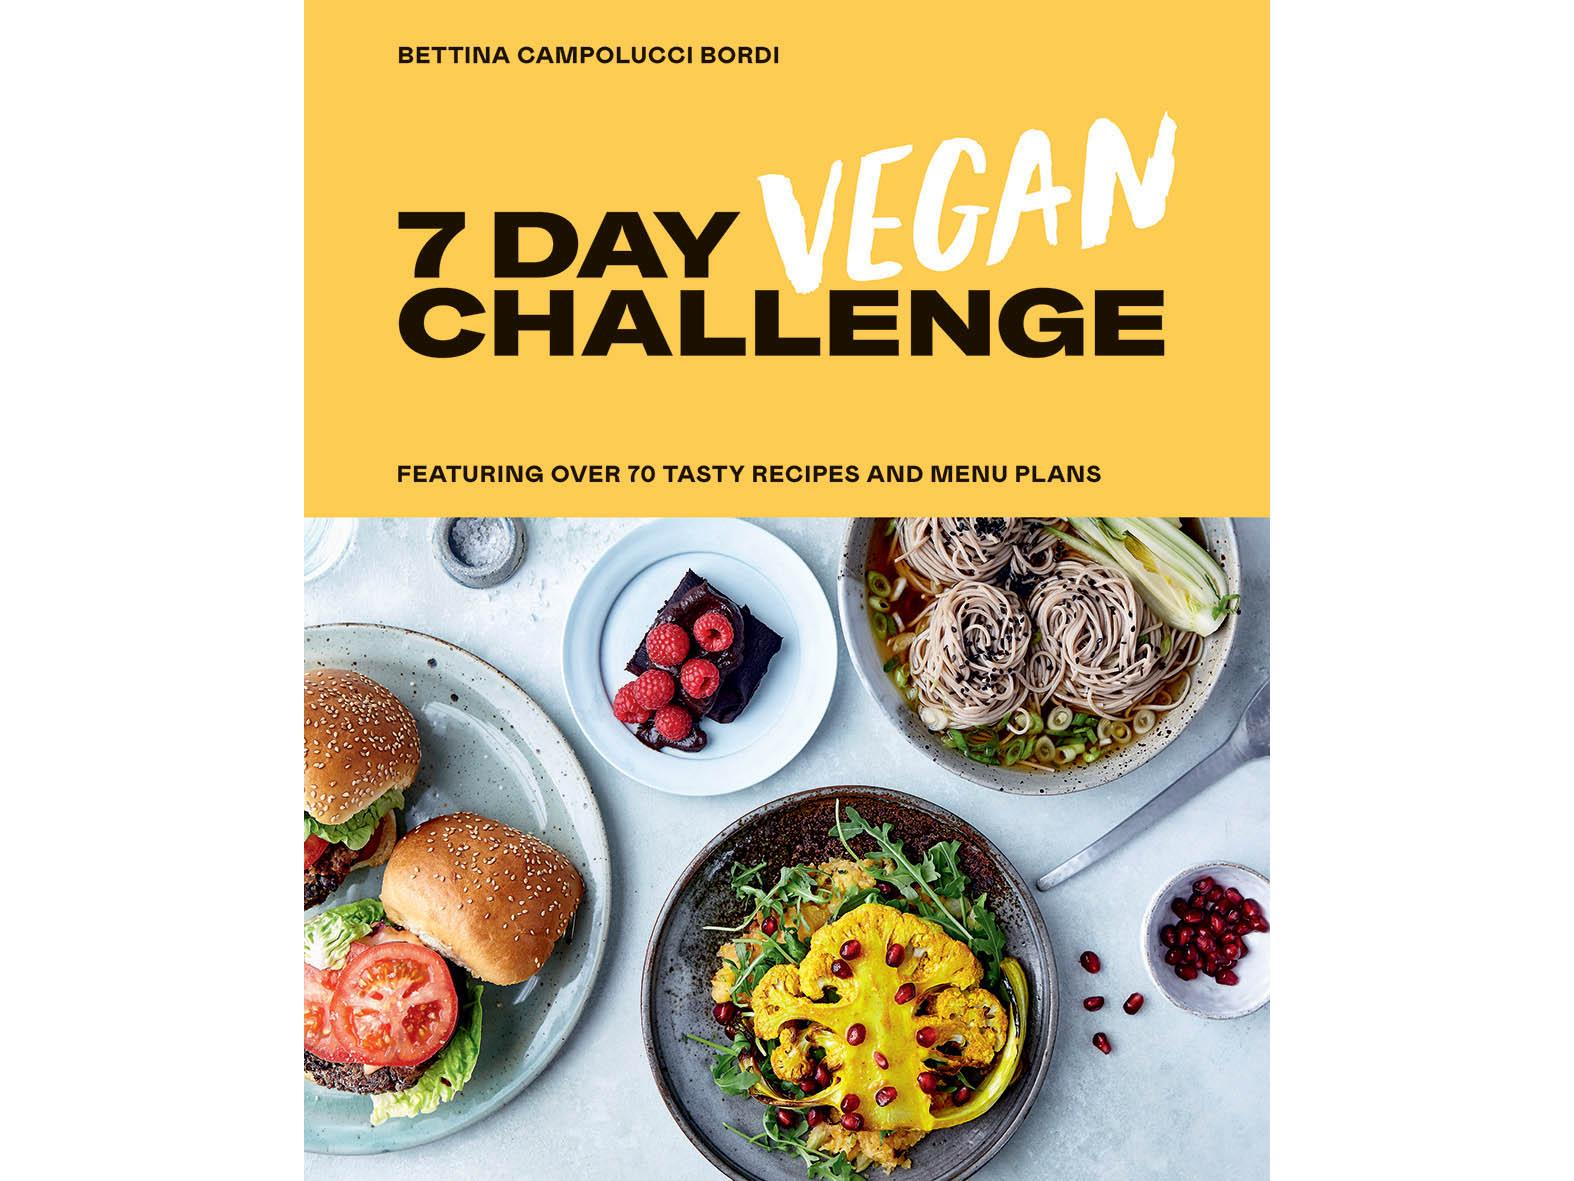 '7 Day Vegan Challenge' by Bettina Campolucci-Bordi. Published by Hardie Grant: £9.72, Wordery